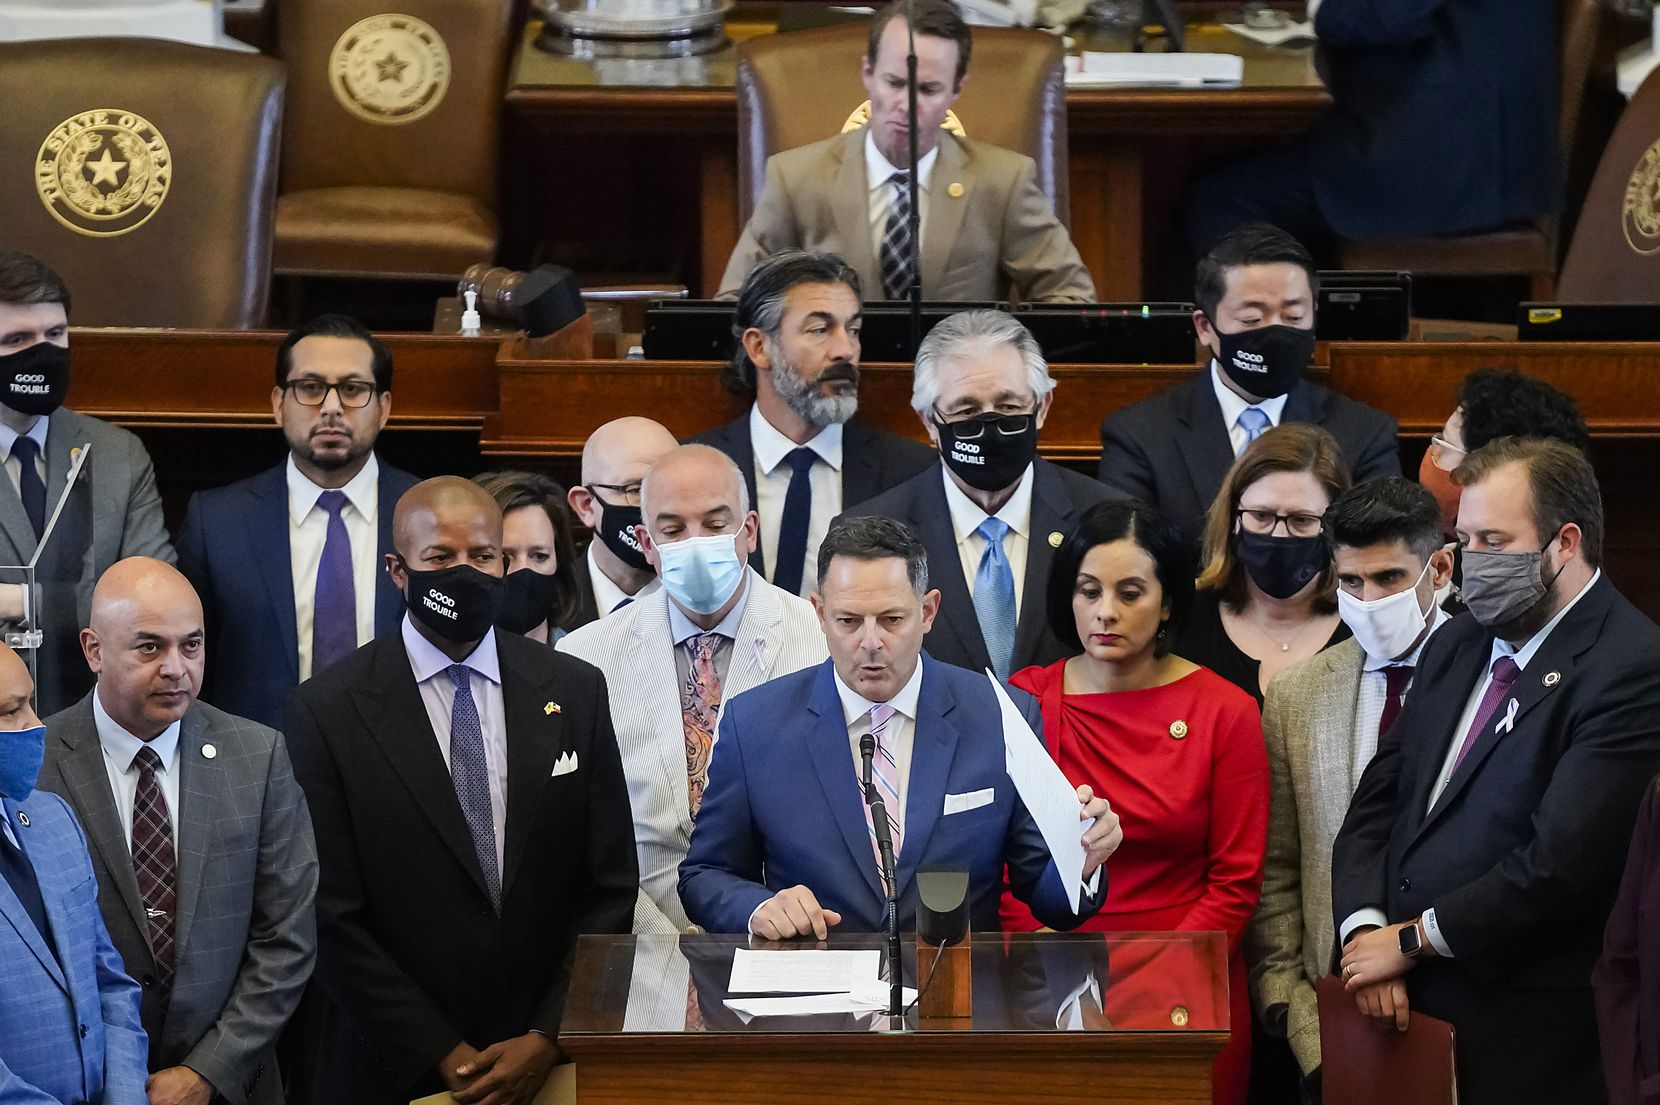 Democrats gather around Rep. Rafael Anchía, D-Dallas, as he speaks in opposition to SB-7 on the floor of the House Chamber at the Texas Capitol during the 87th Texas legislature on Friday, May 7, 2021, in Austin. (Smiley N. Pool/The Dallas Morning News)